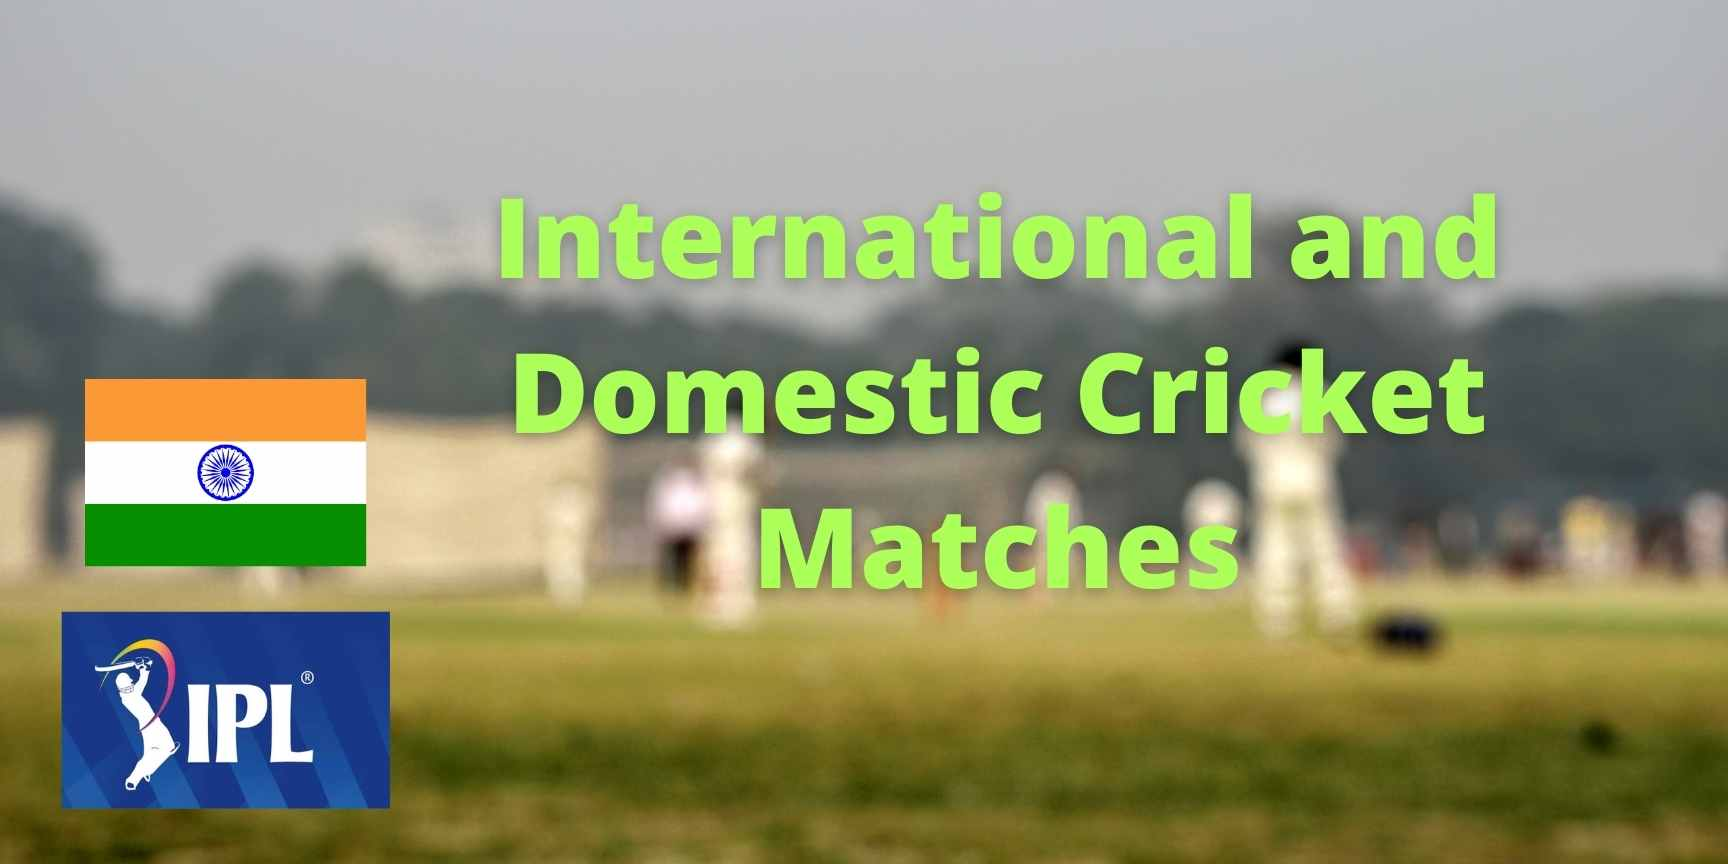 International and Domestic Cricket Matches